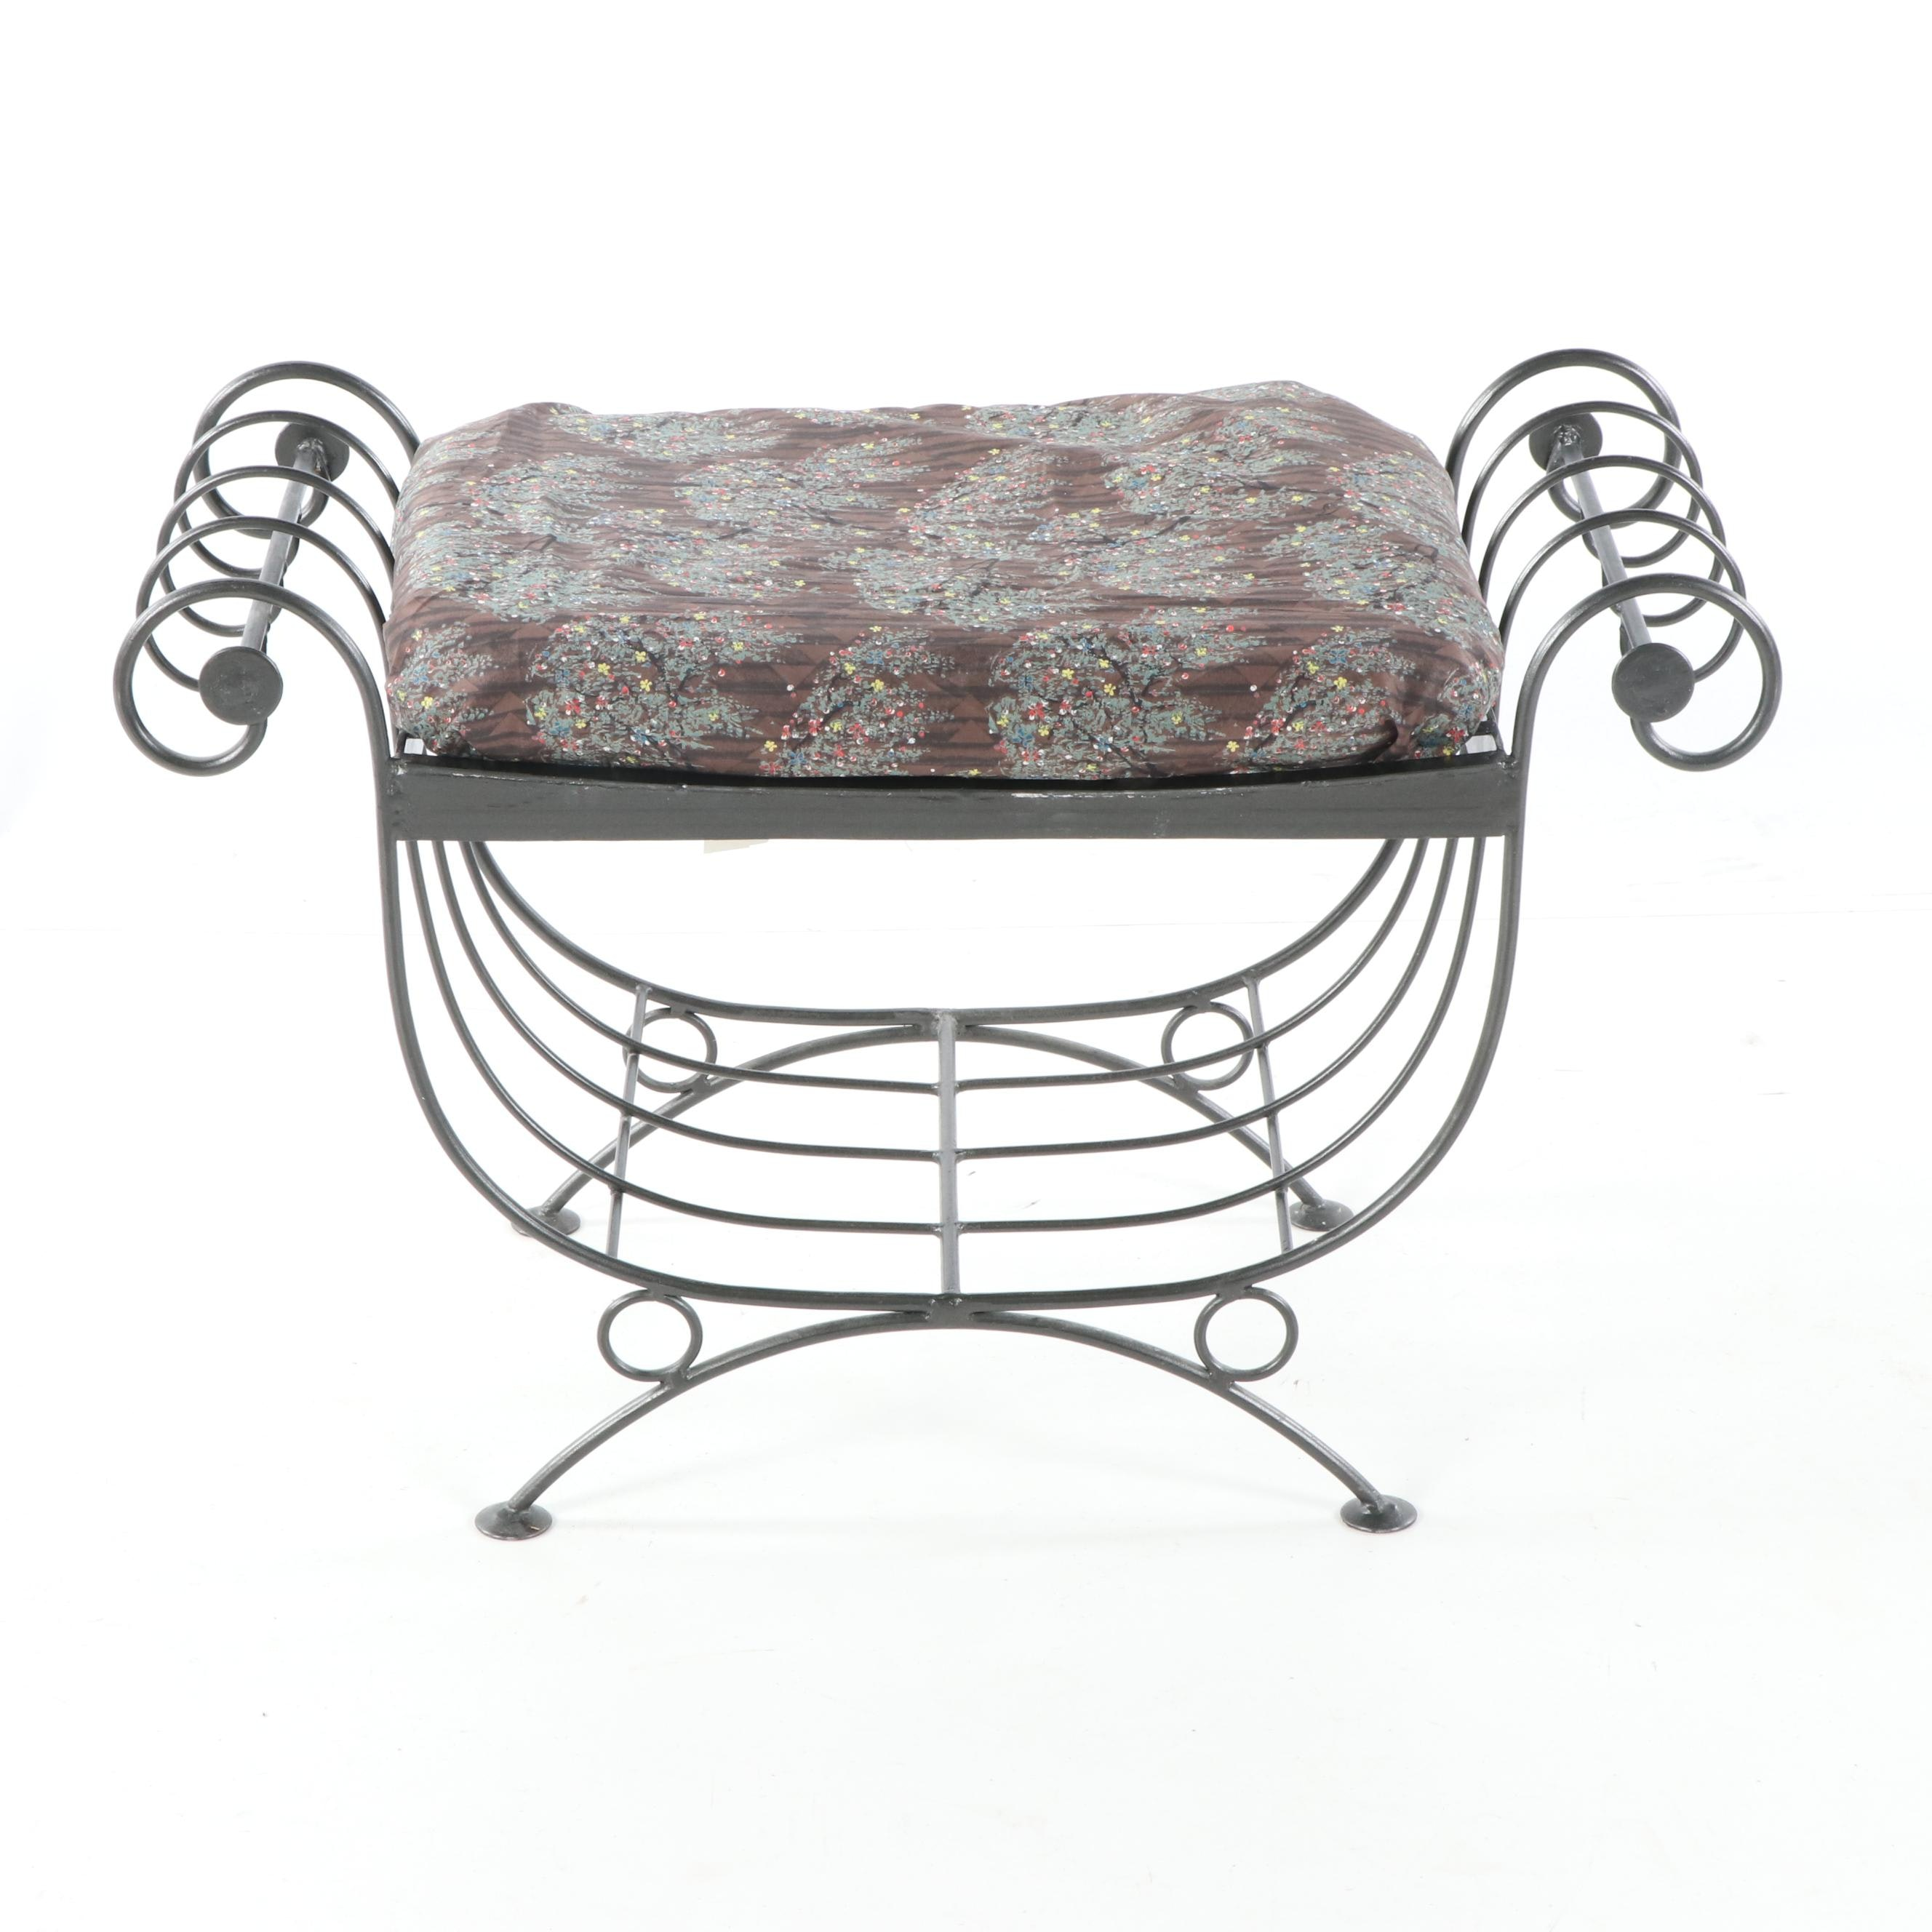 Forged Iron Curule Bench with Cushion, 21st Century